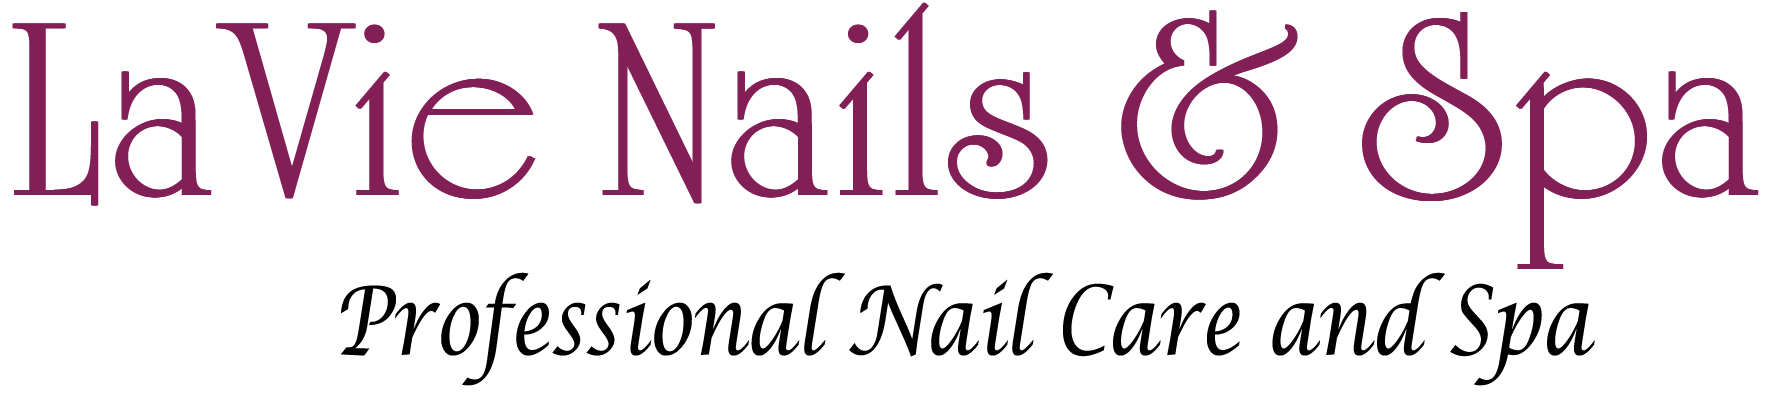 LaVie Nails and Spa